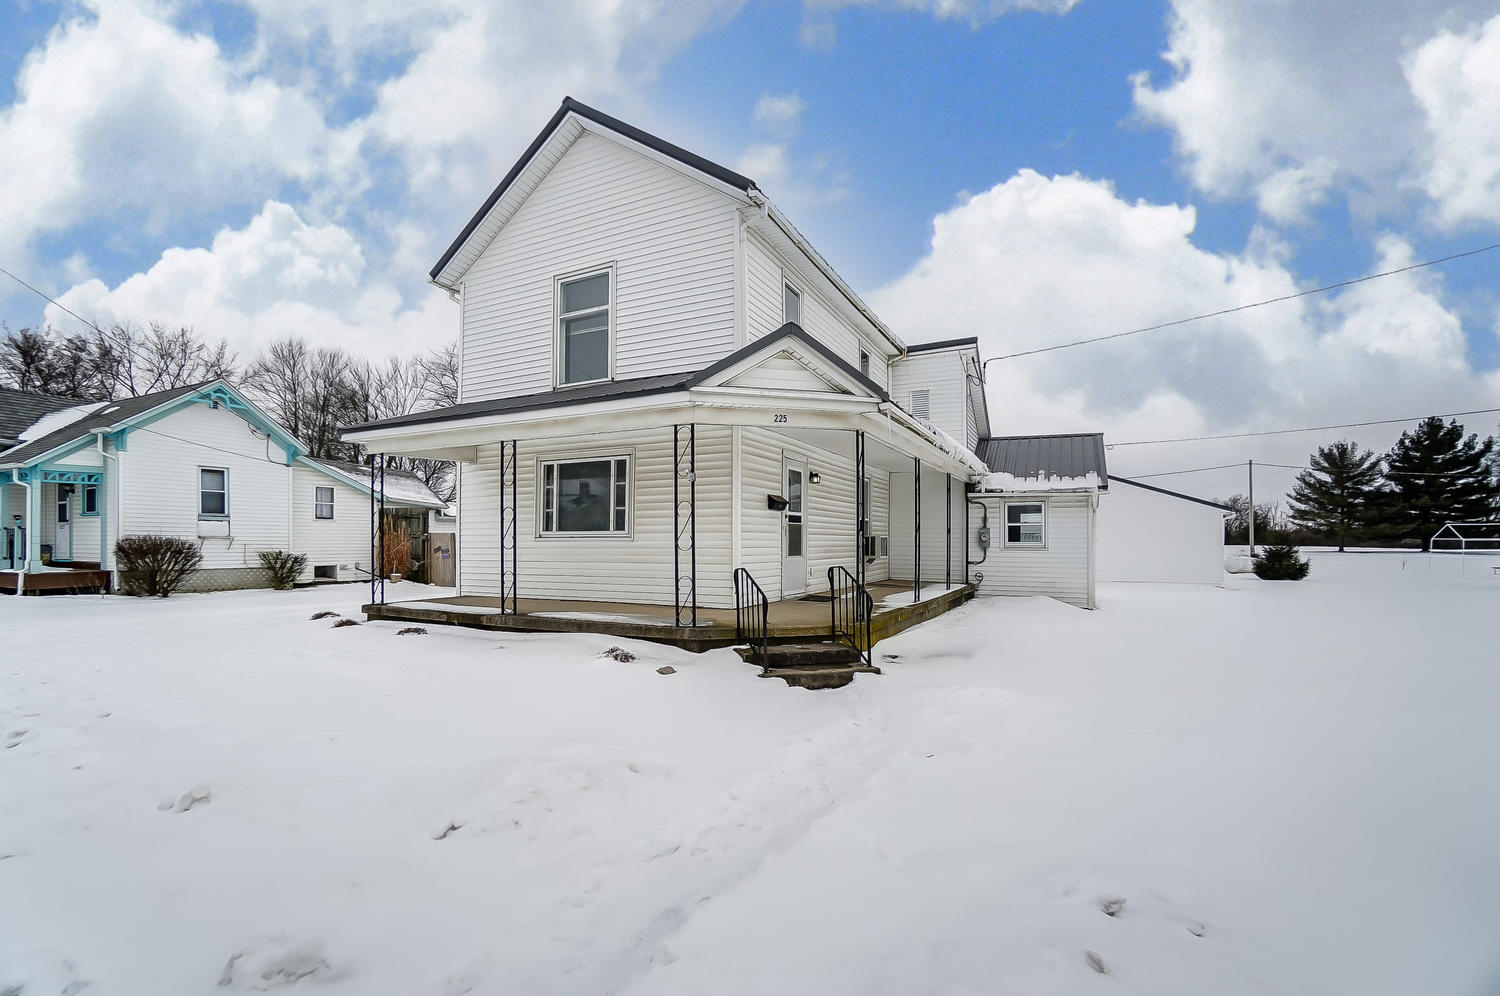 225 S Walnut Street Property Photo - Fletcher, OH real estate listing